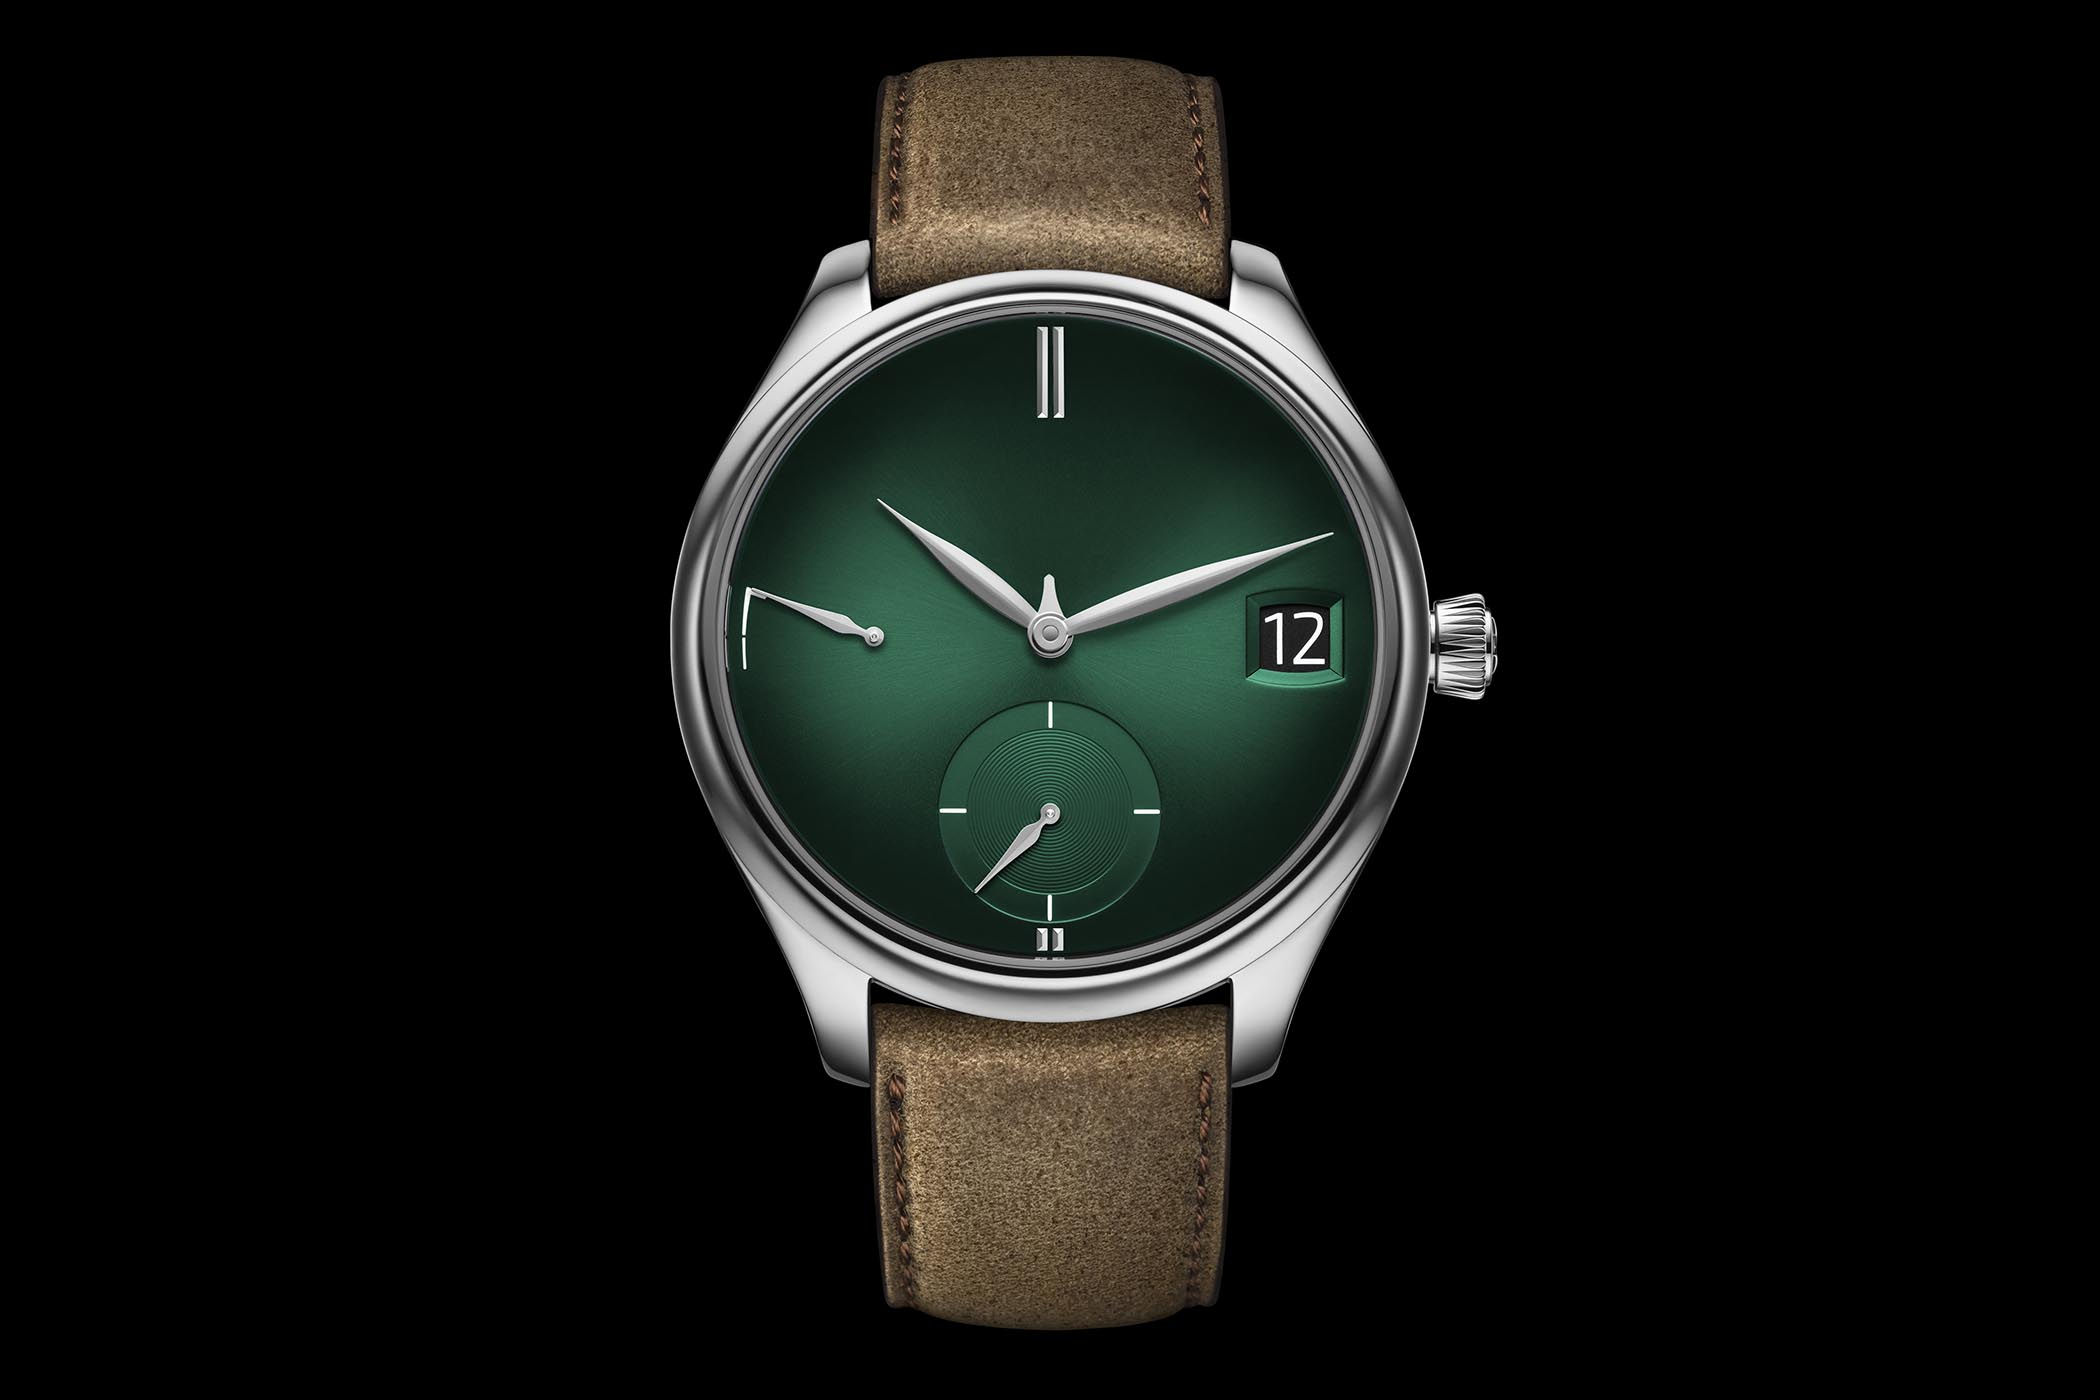 H Moser Cie Endeavour Perpetual Calendar Purity Cosmic Green - Pre-Baselworld 2018